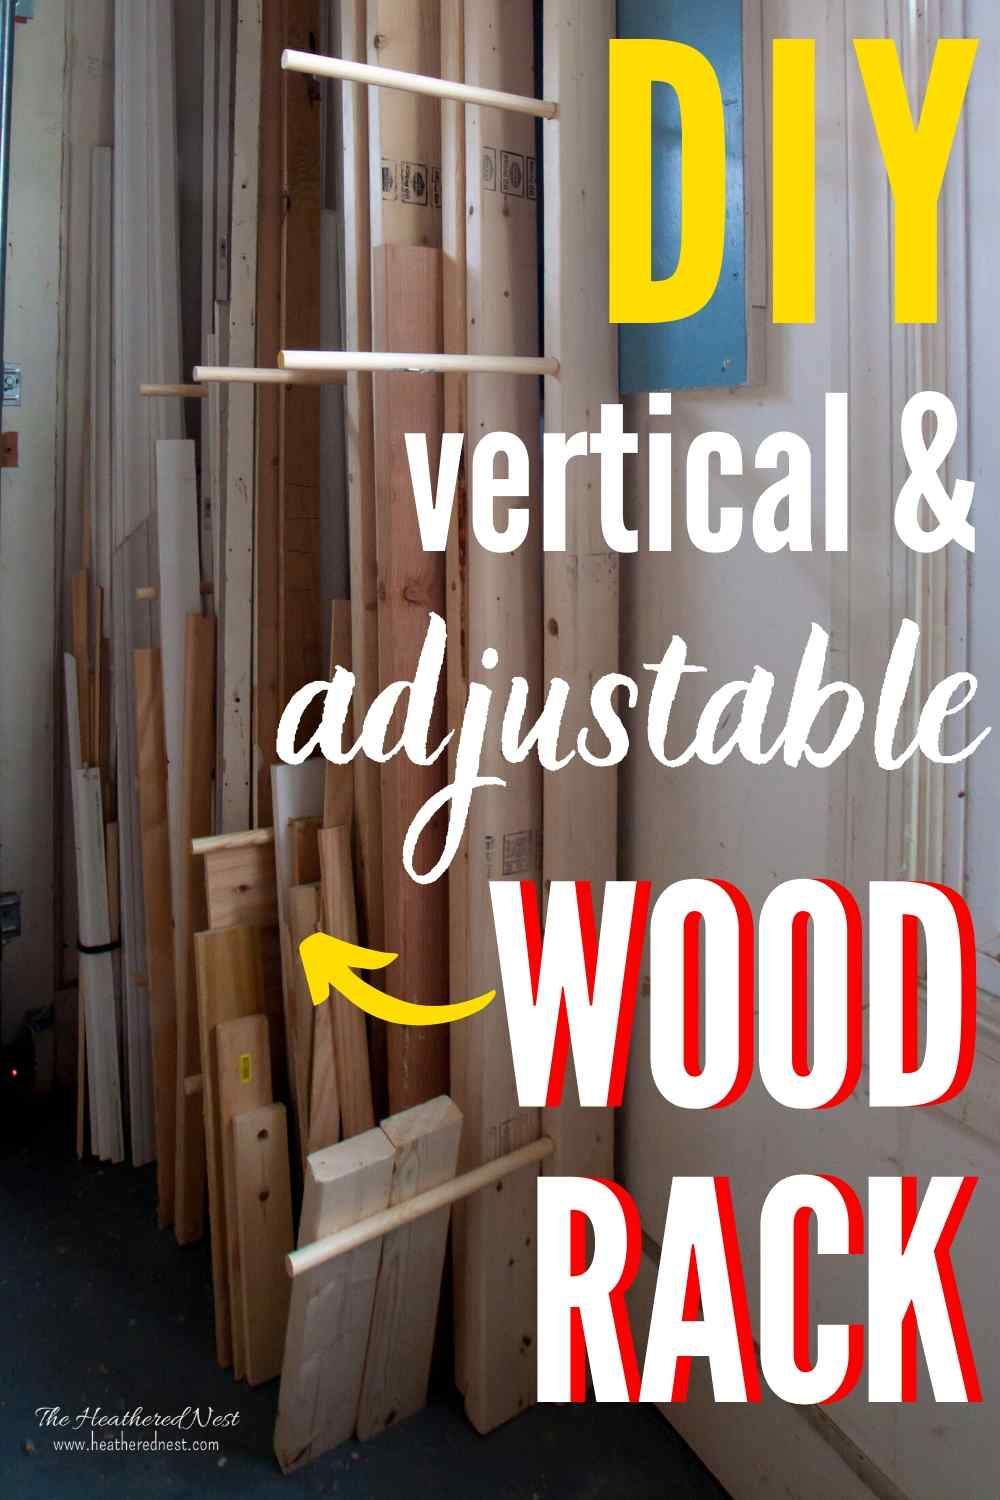 DIY Lumber Storage Rack. Stores Wood vertically to fit in small spaces, and is totally adjustable to accommodate lumber of various sizes.